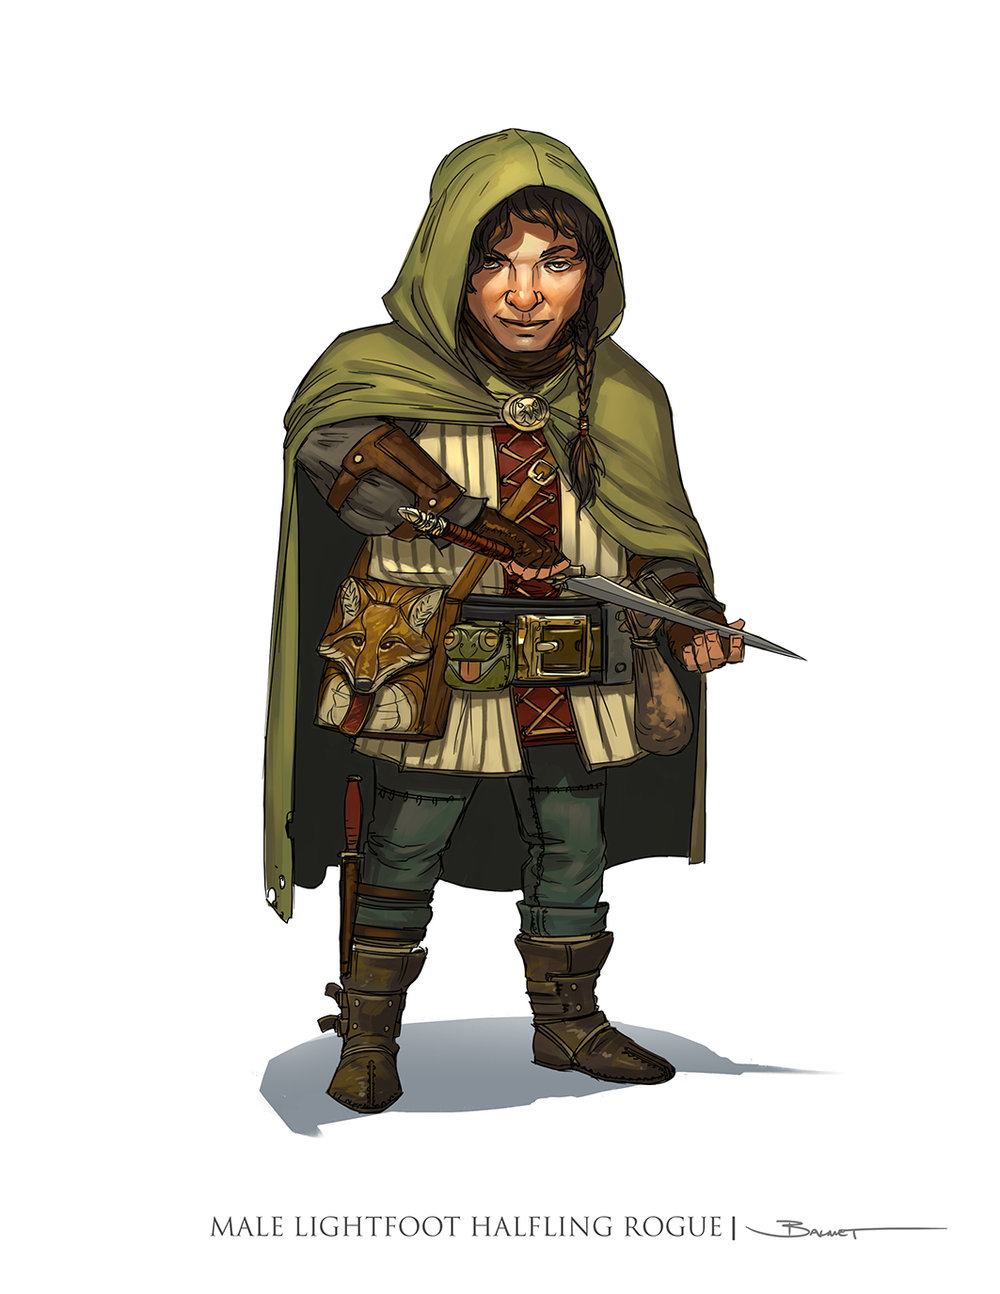 A Male Halfling Rogue